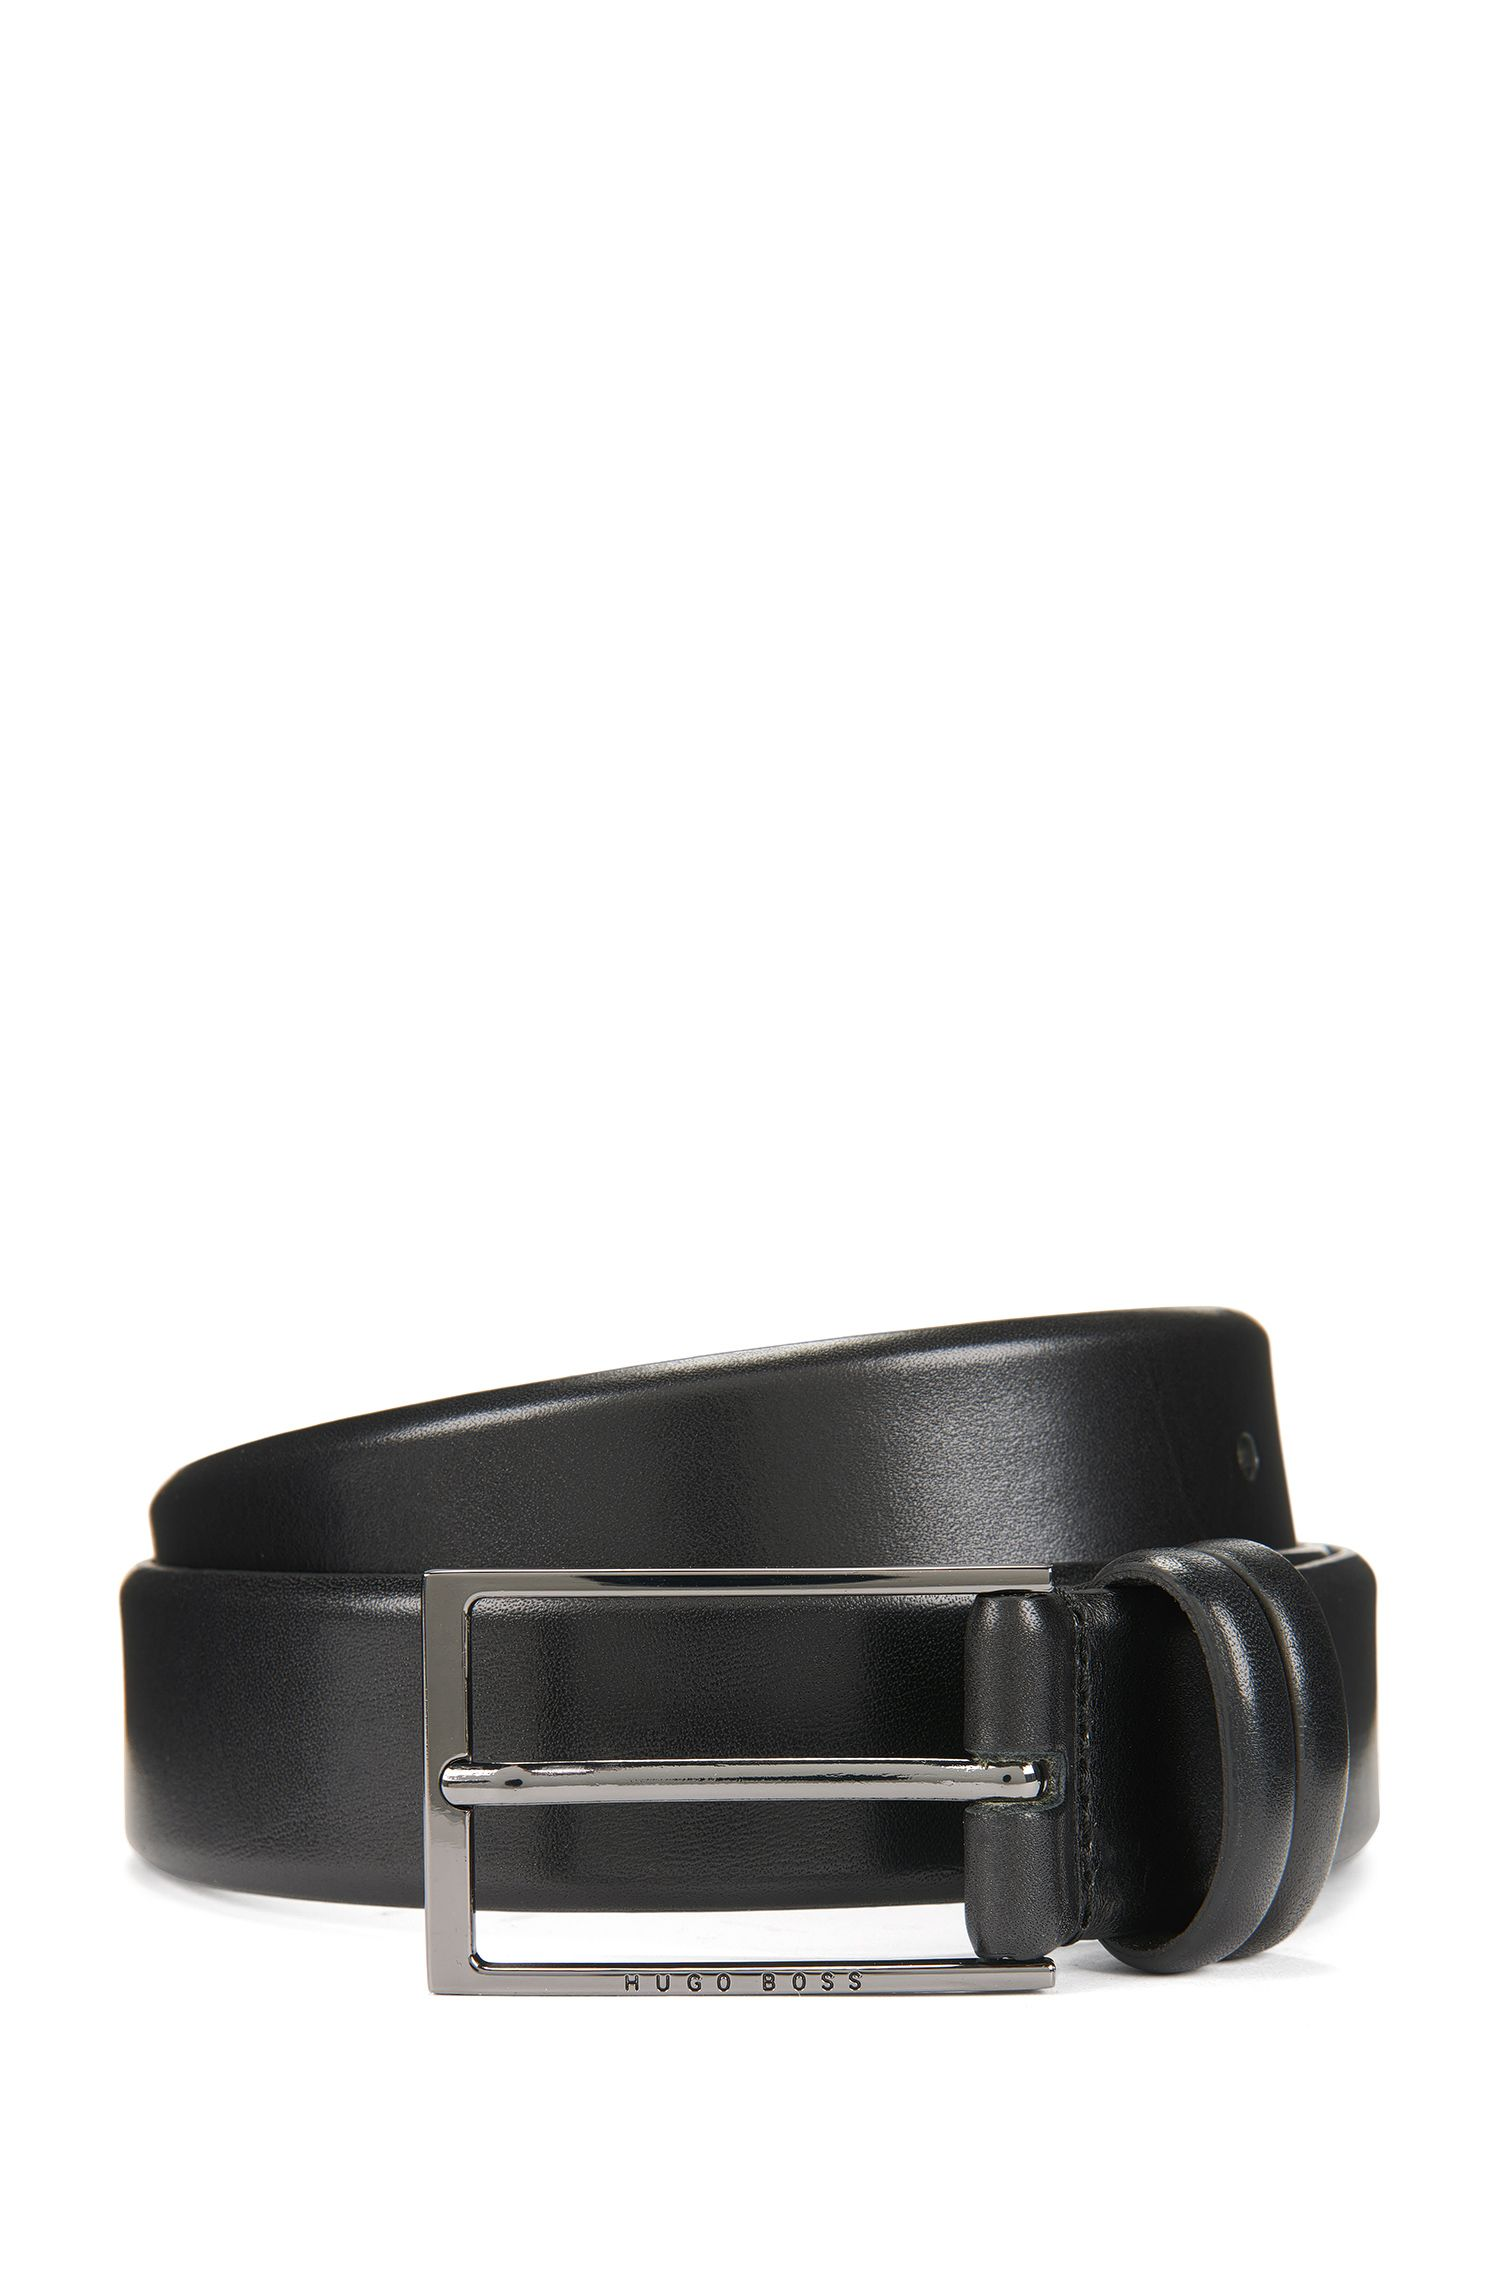 Two-tone belt in vegetable-tanned leather